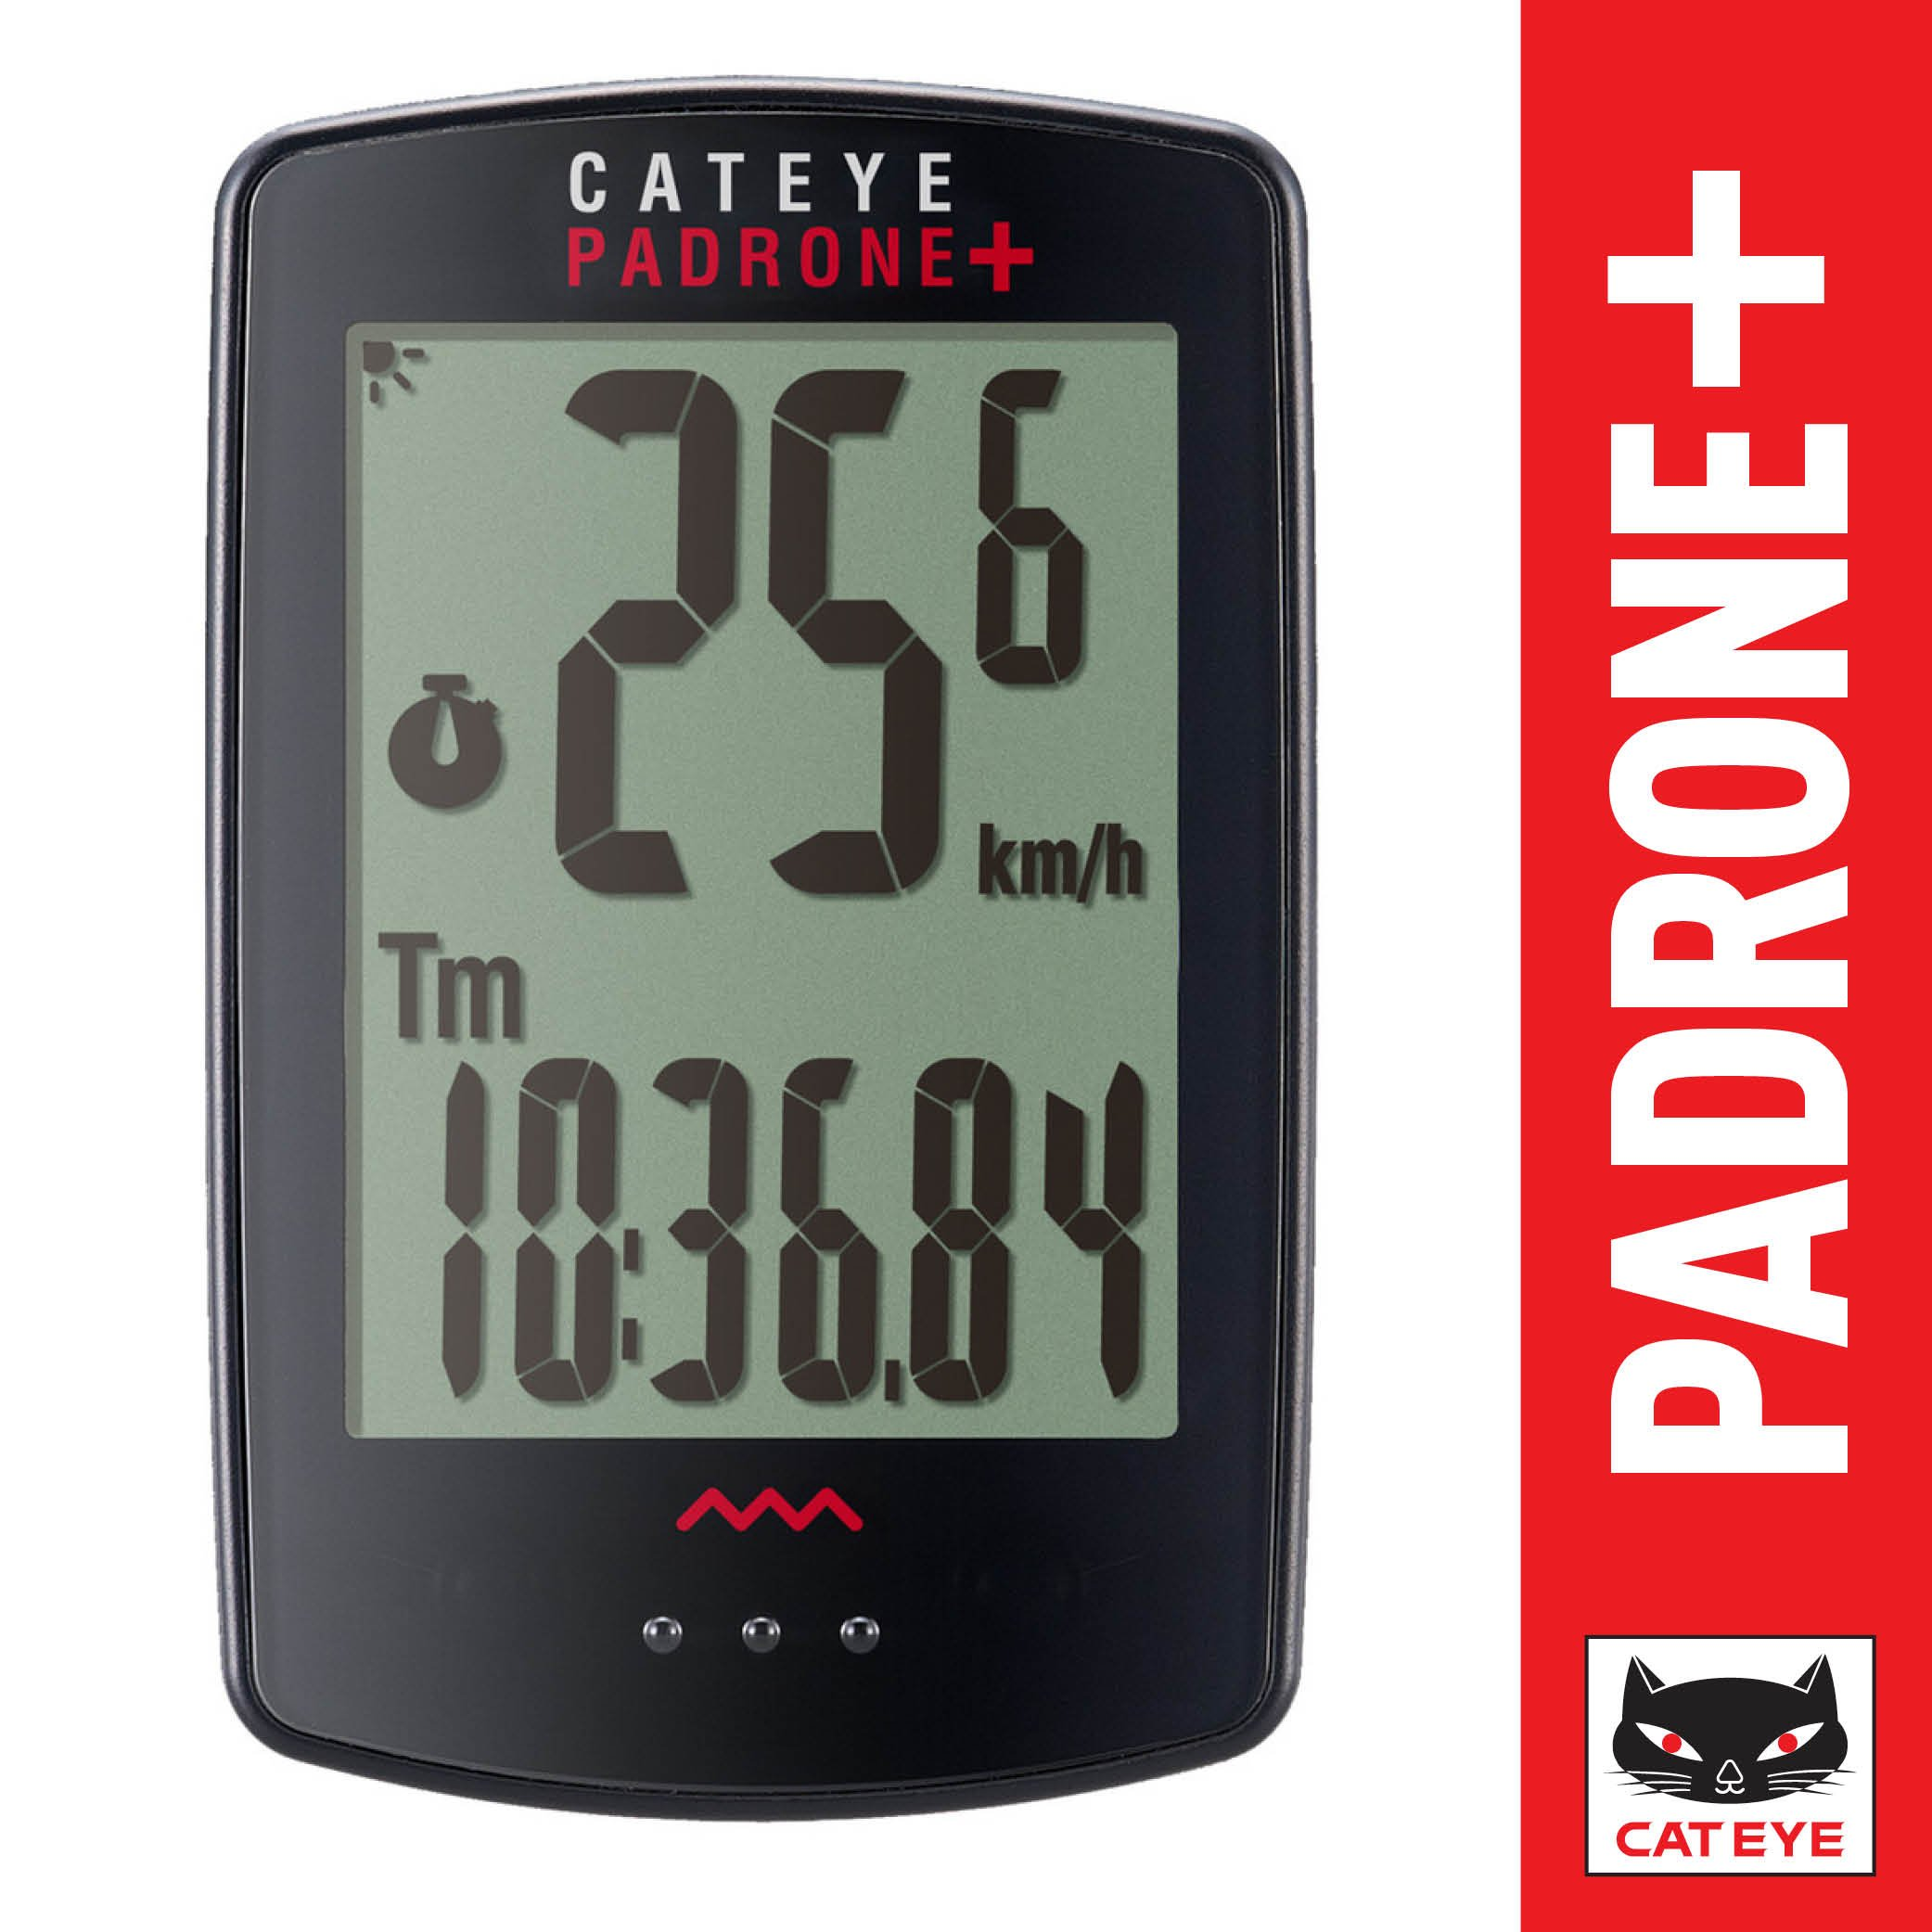 CAT EYE - Padrone Plus Wireless Bike Computer, Black